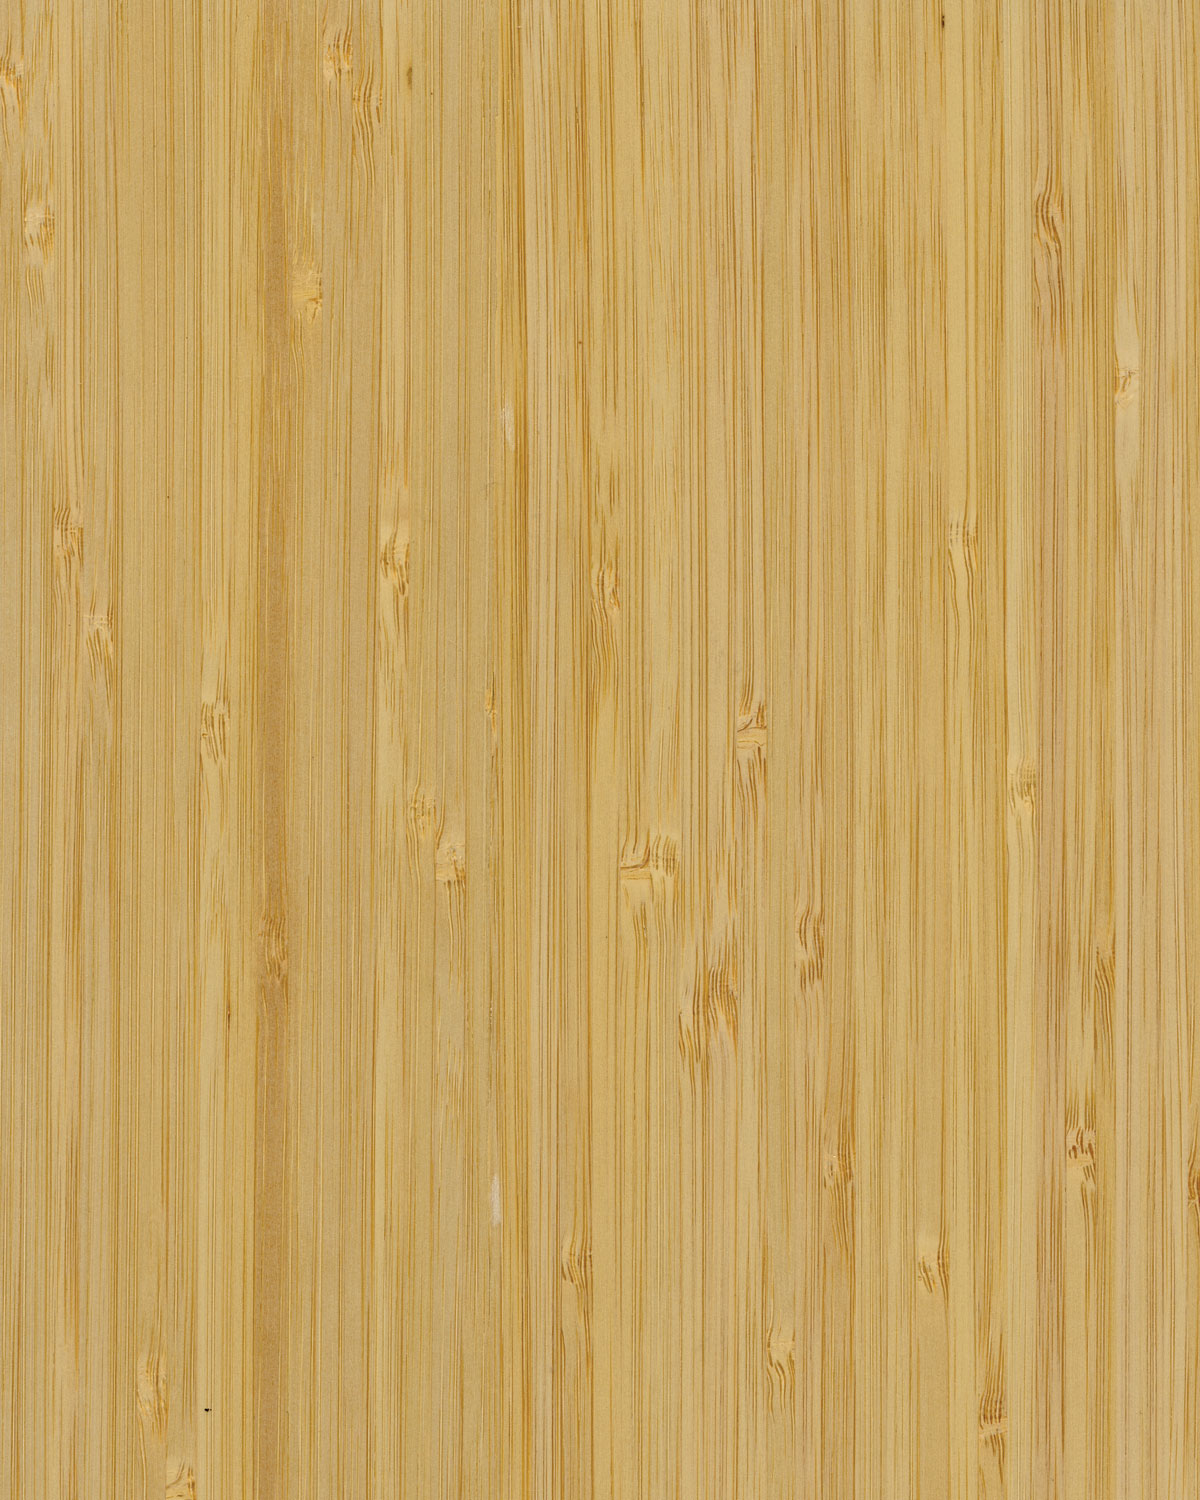 Bamboo, Narrow/Natural Color